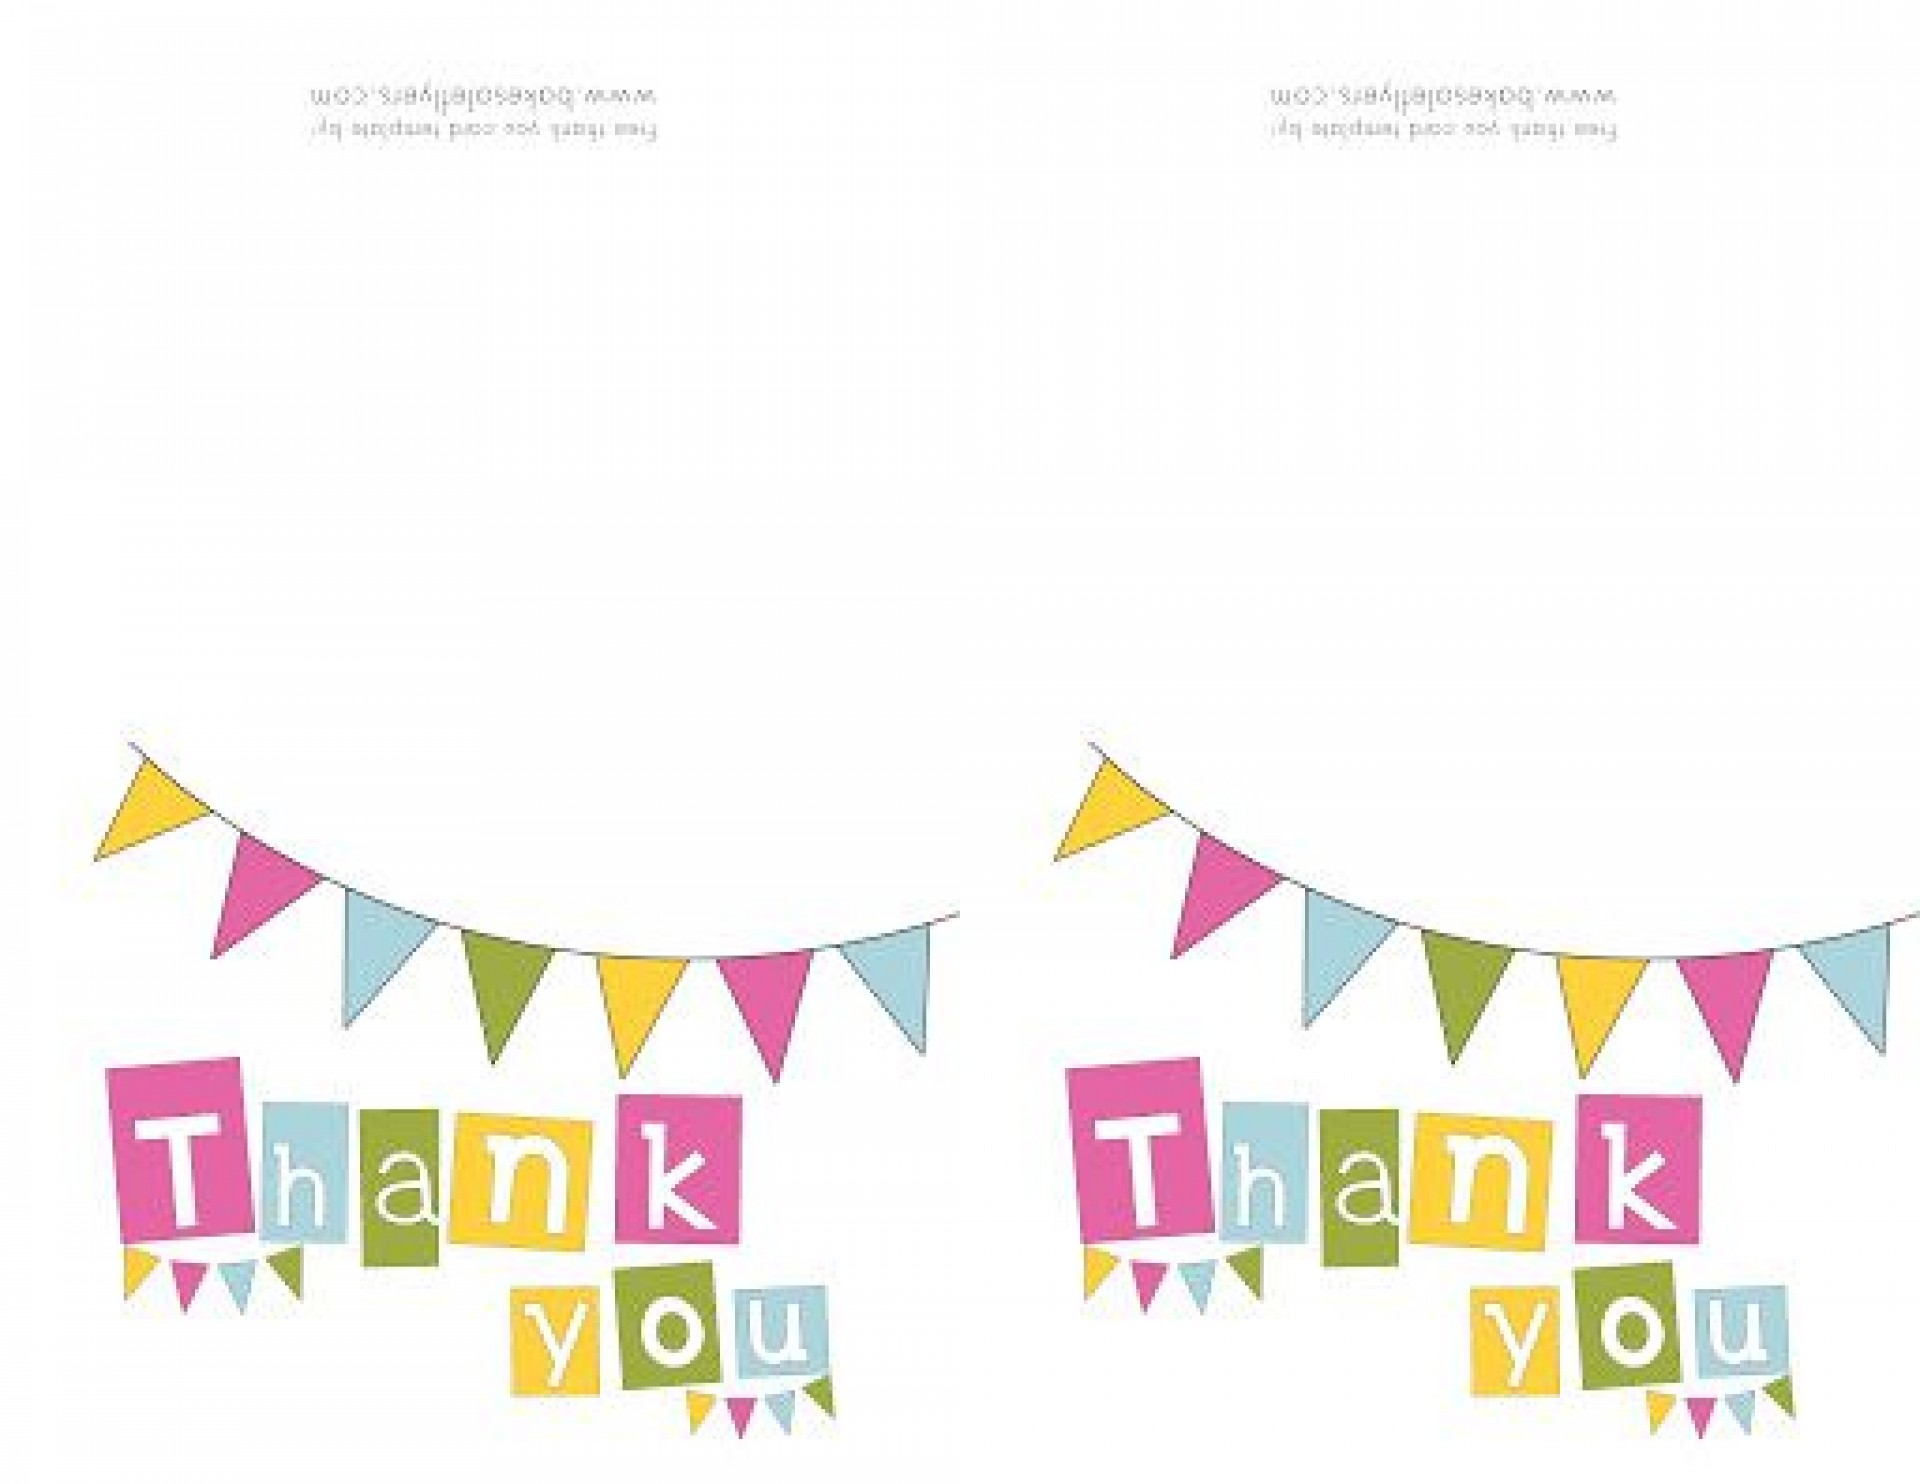 009 Striking Thank You Note Template Pdf Photo  Card Free Letter Example For Student1920